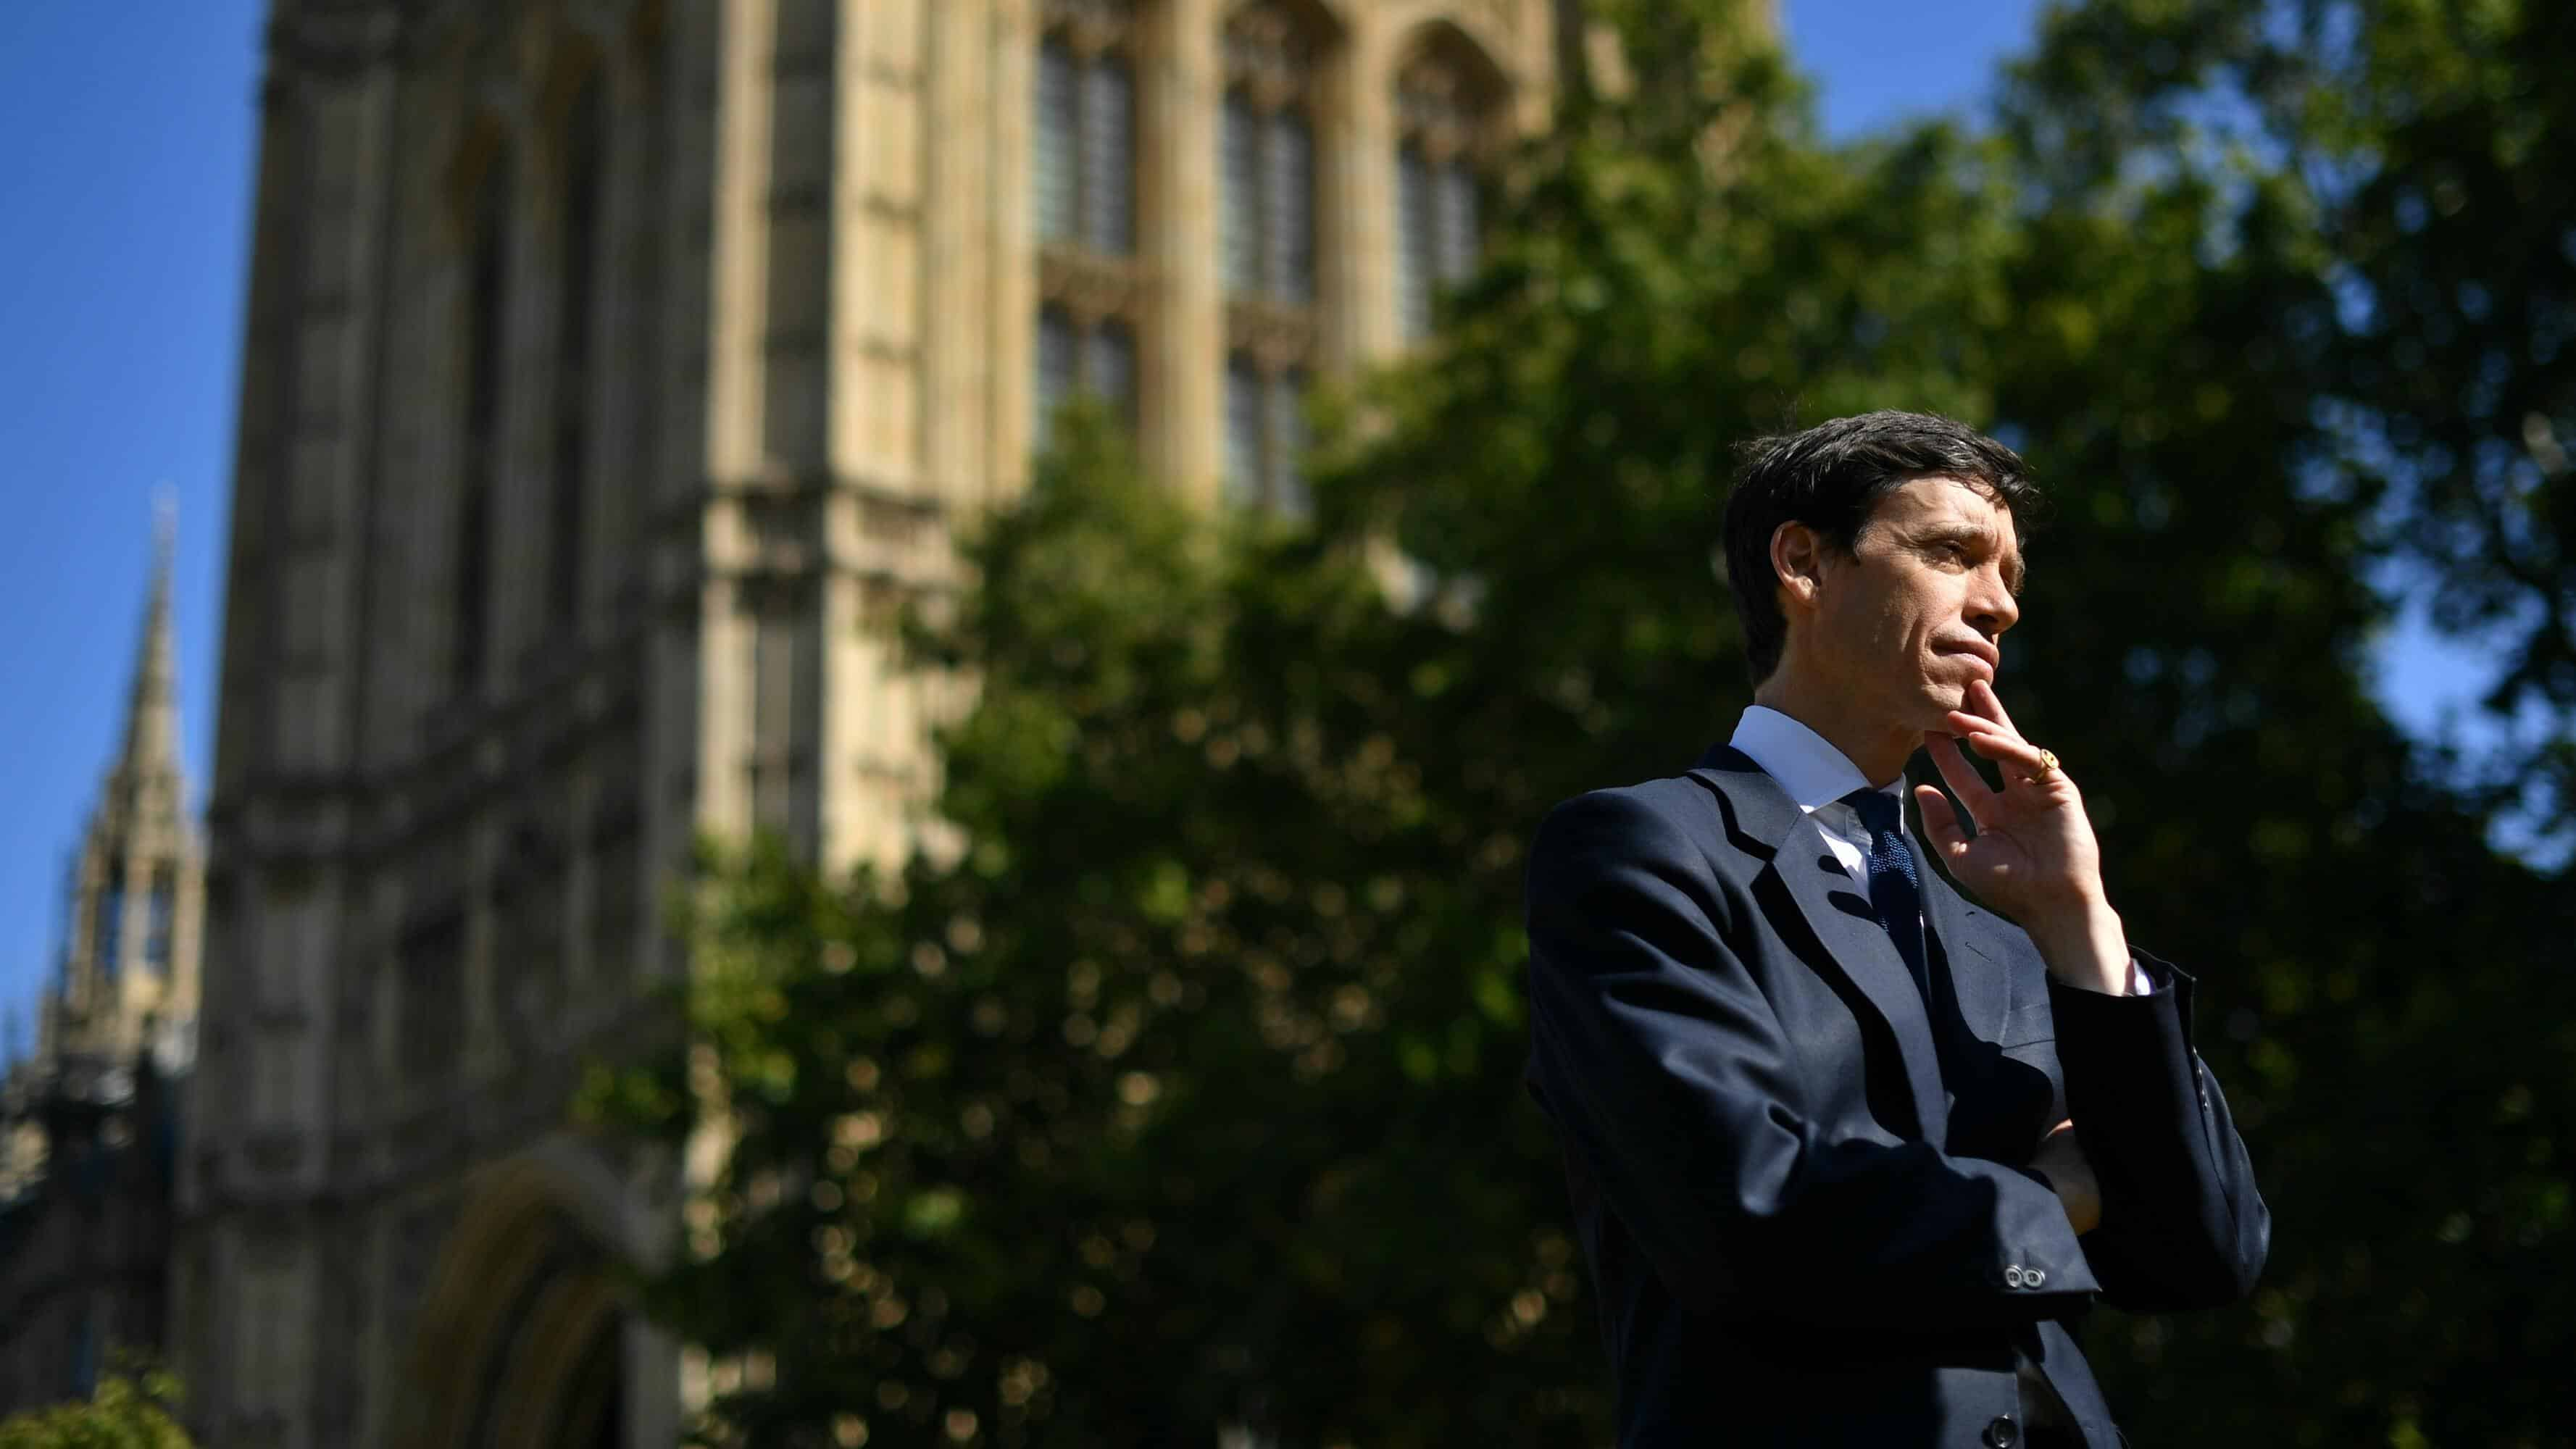 One-time United Kingdom prime ministerial hopeful, Rory Stewart, steps down